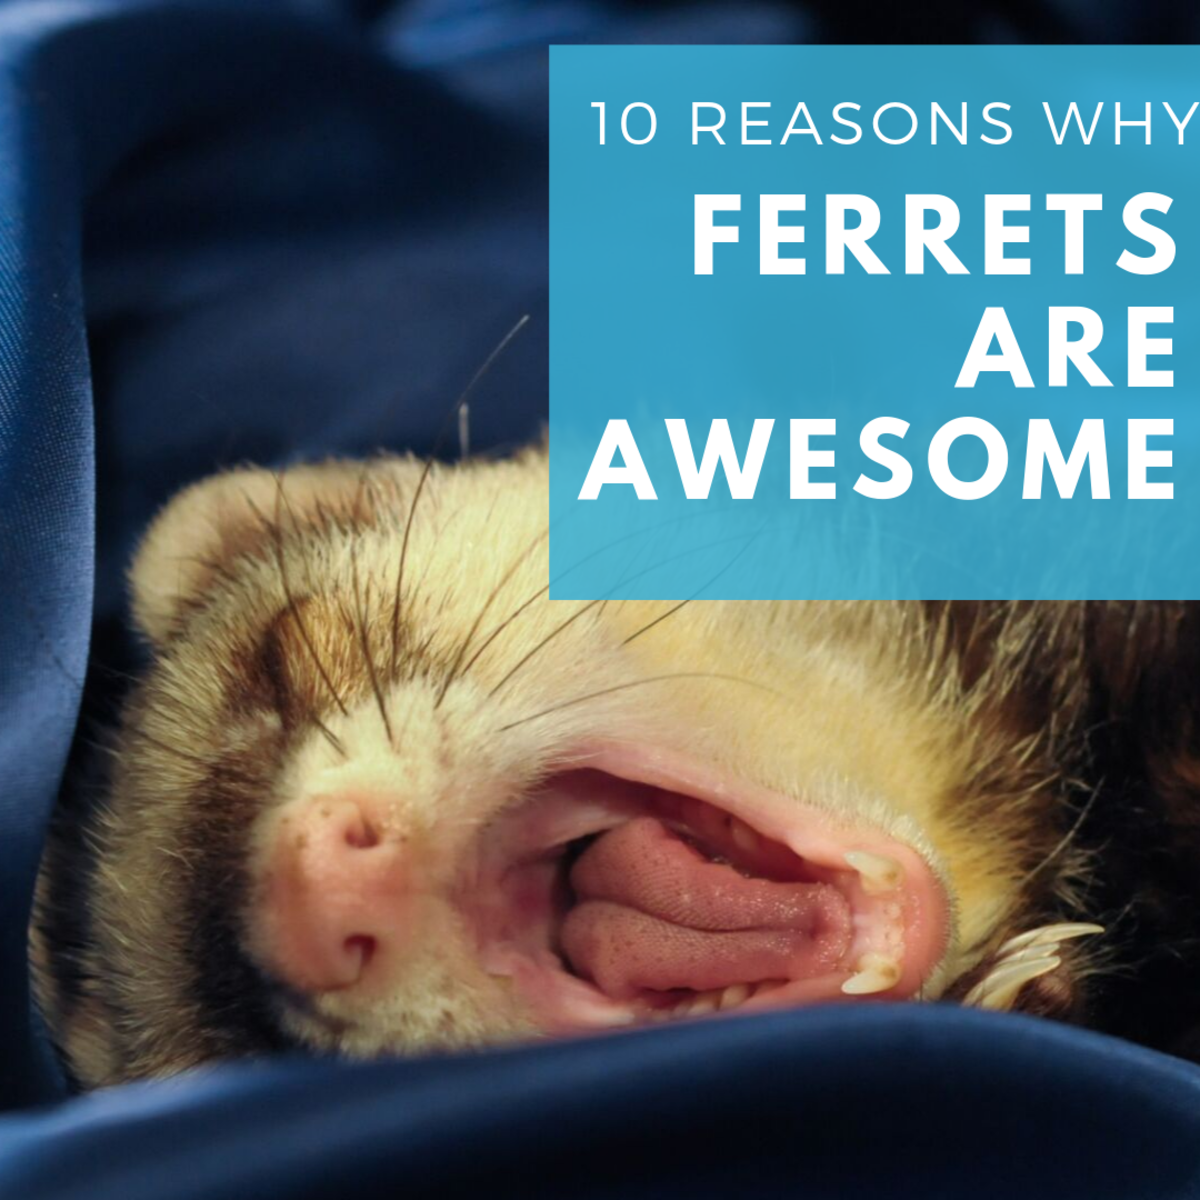 Why Ferrets Make Great Pets